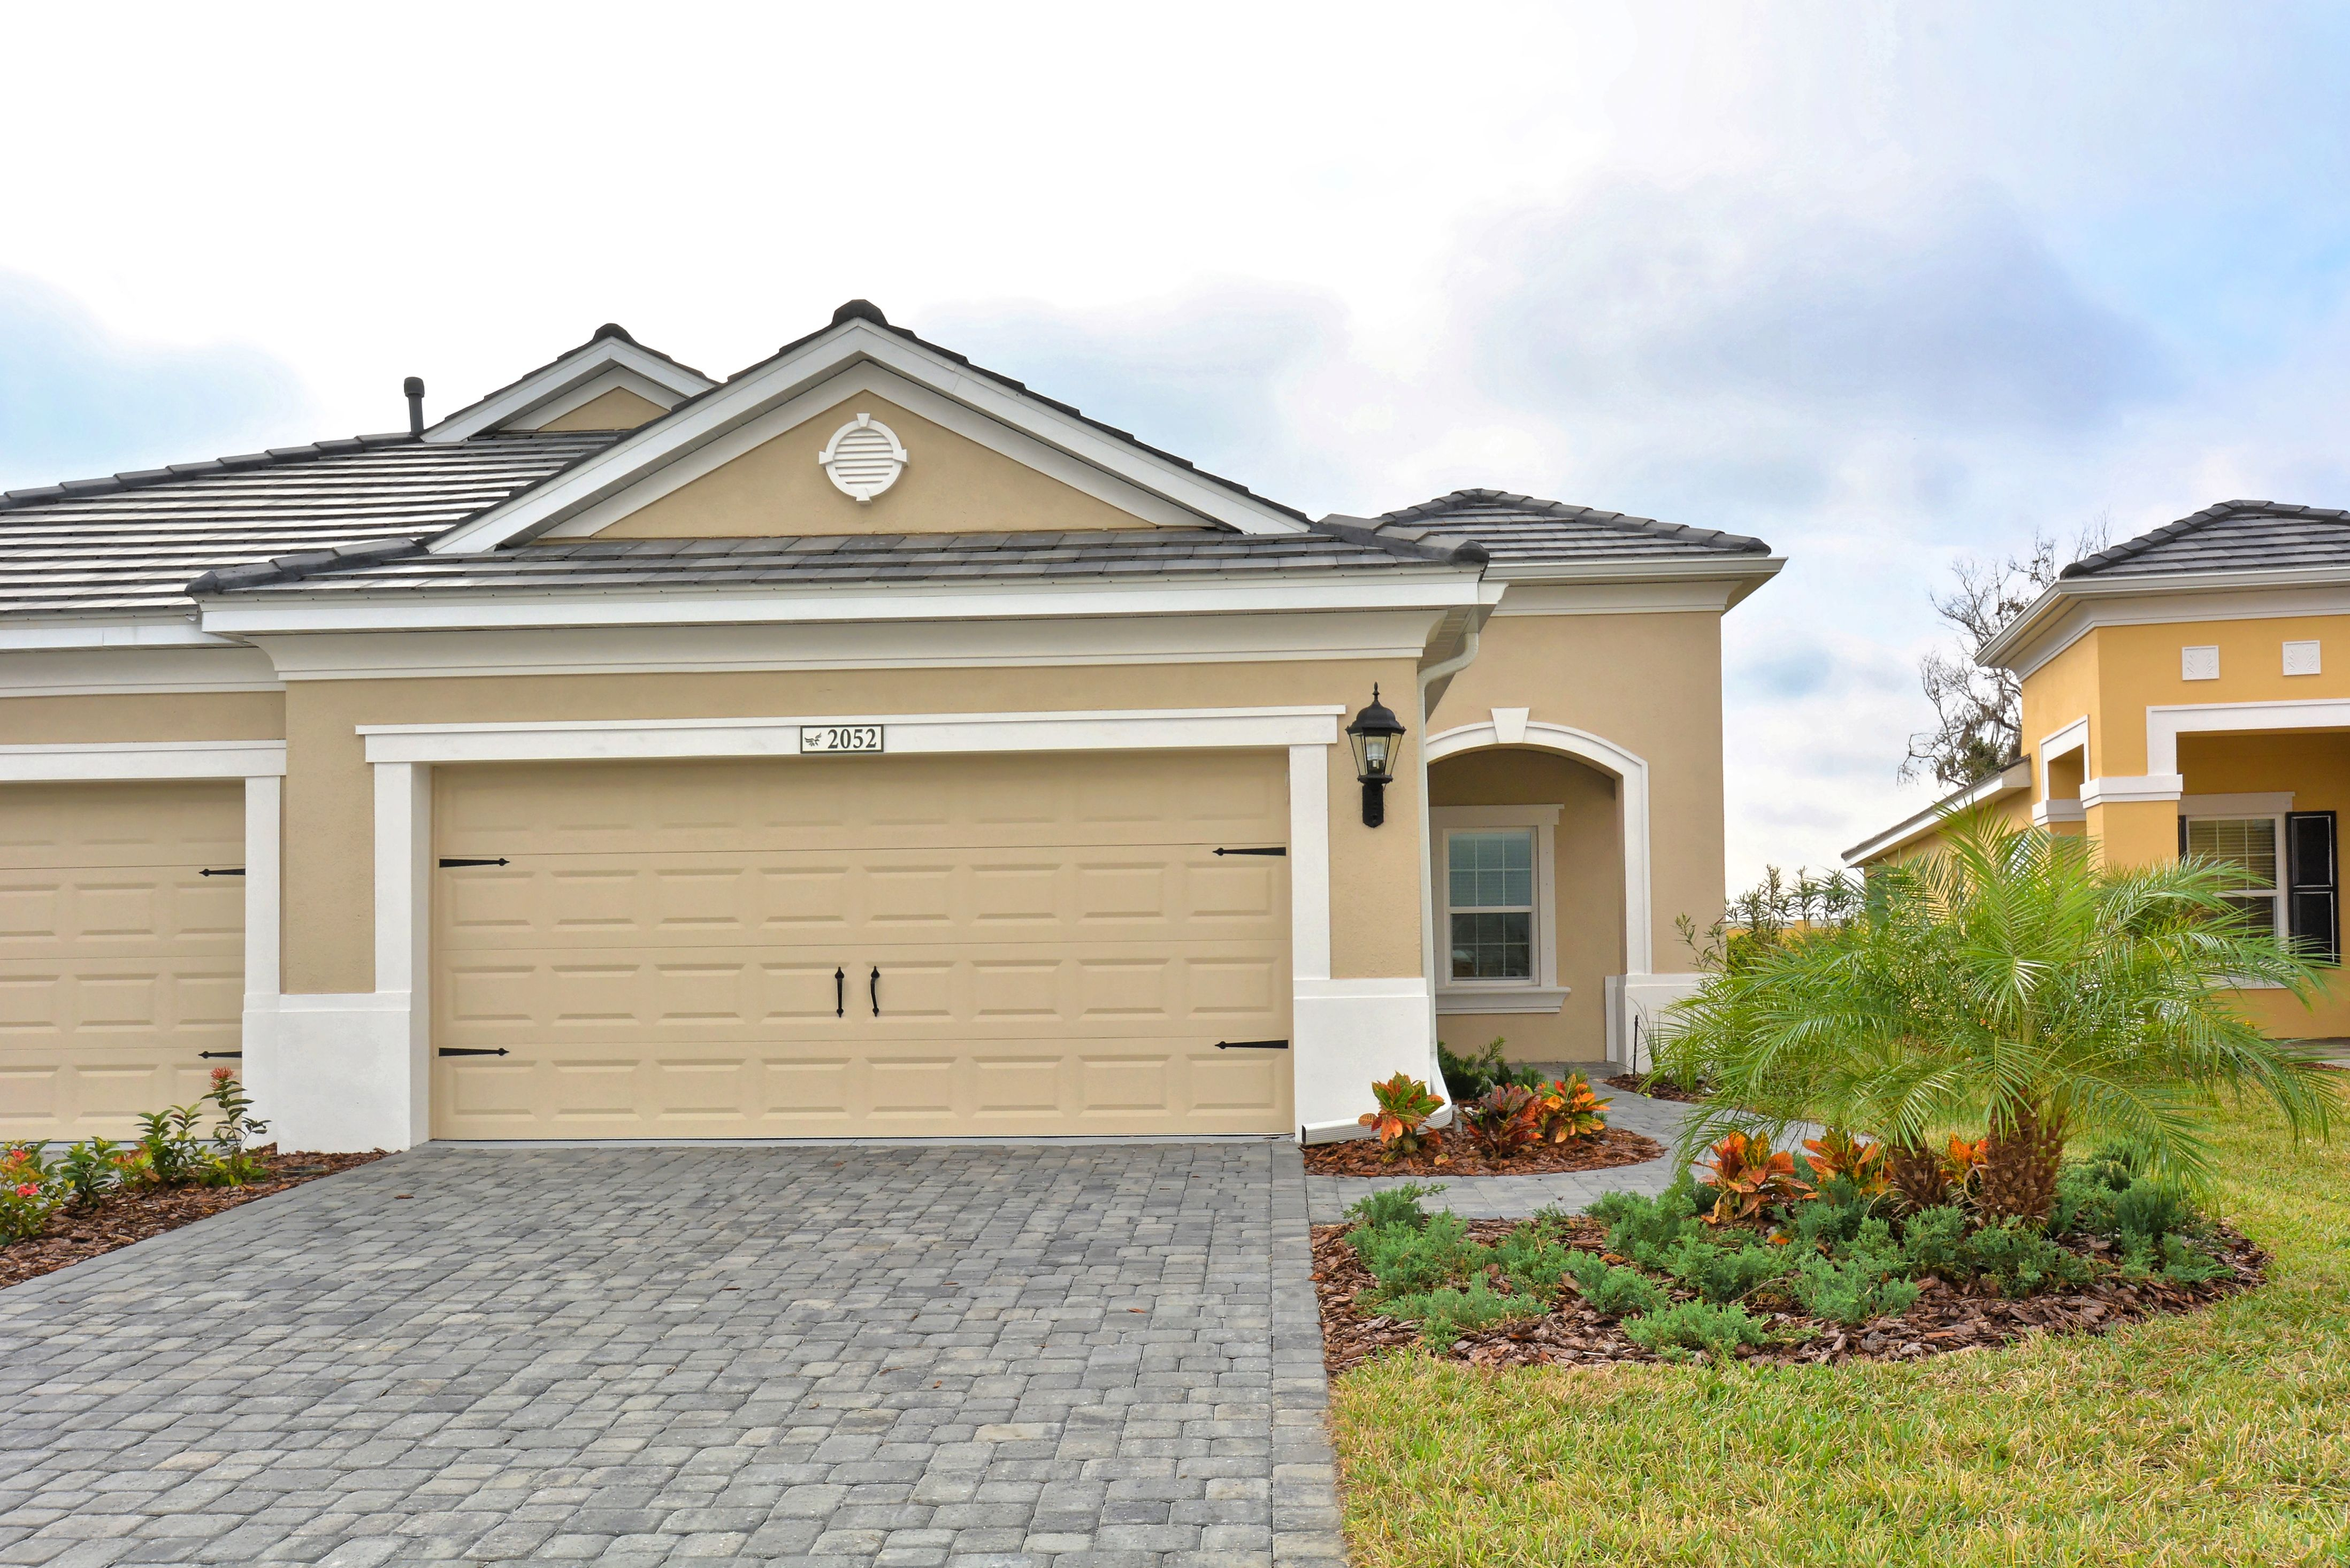 Eagle trace at bradenton offers ideal homes tidewater for Tidewater homes